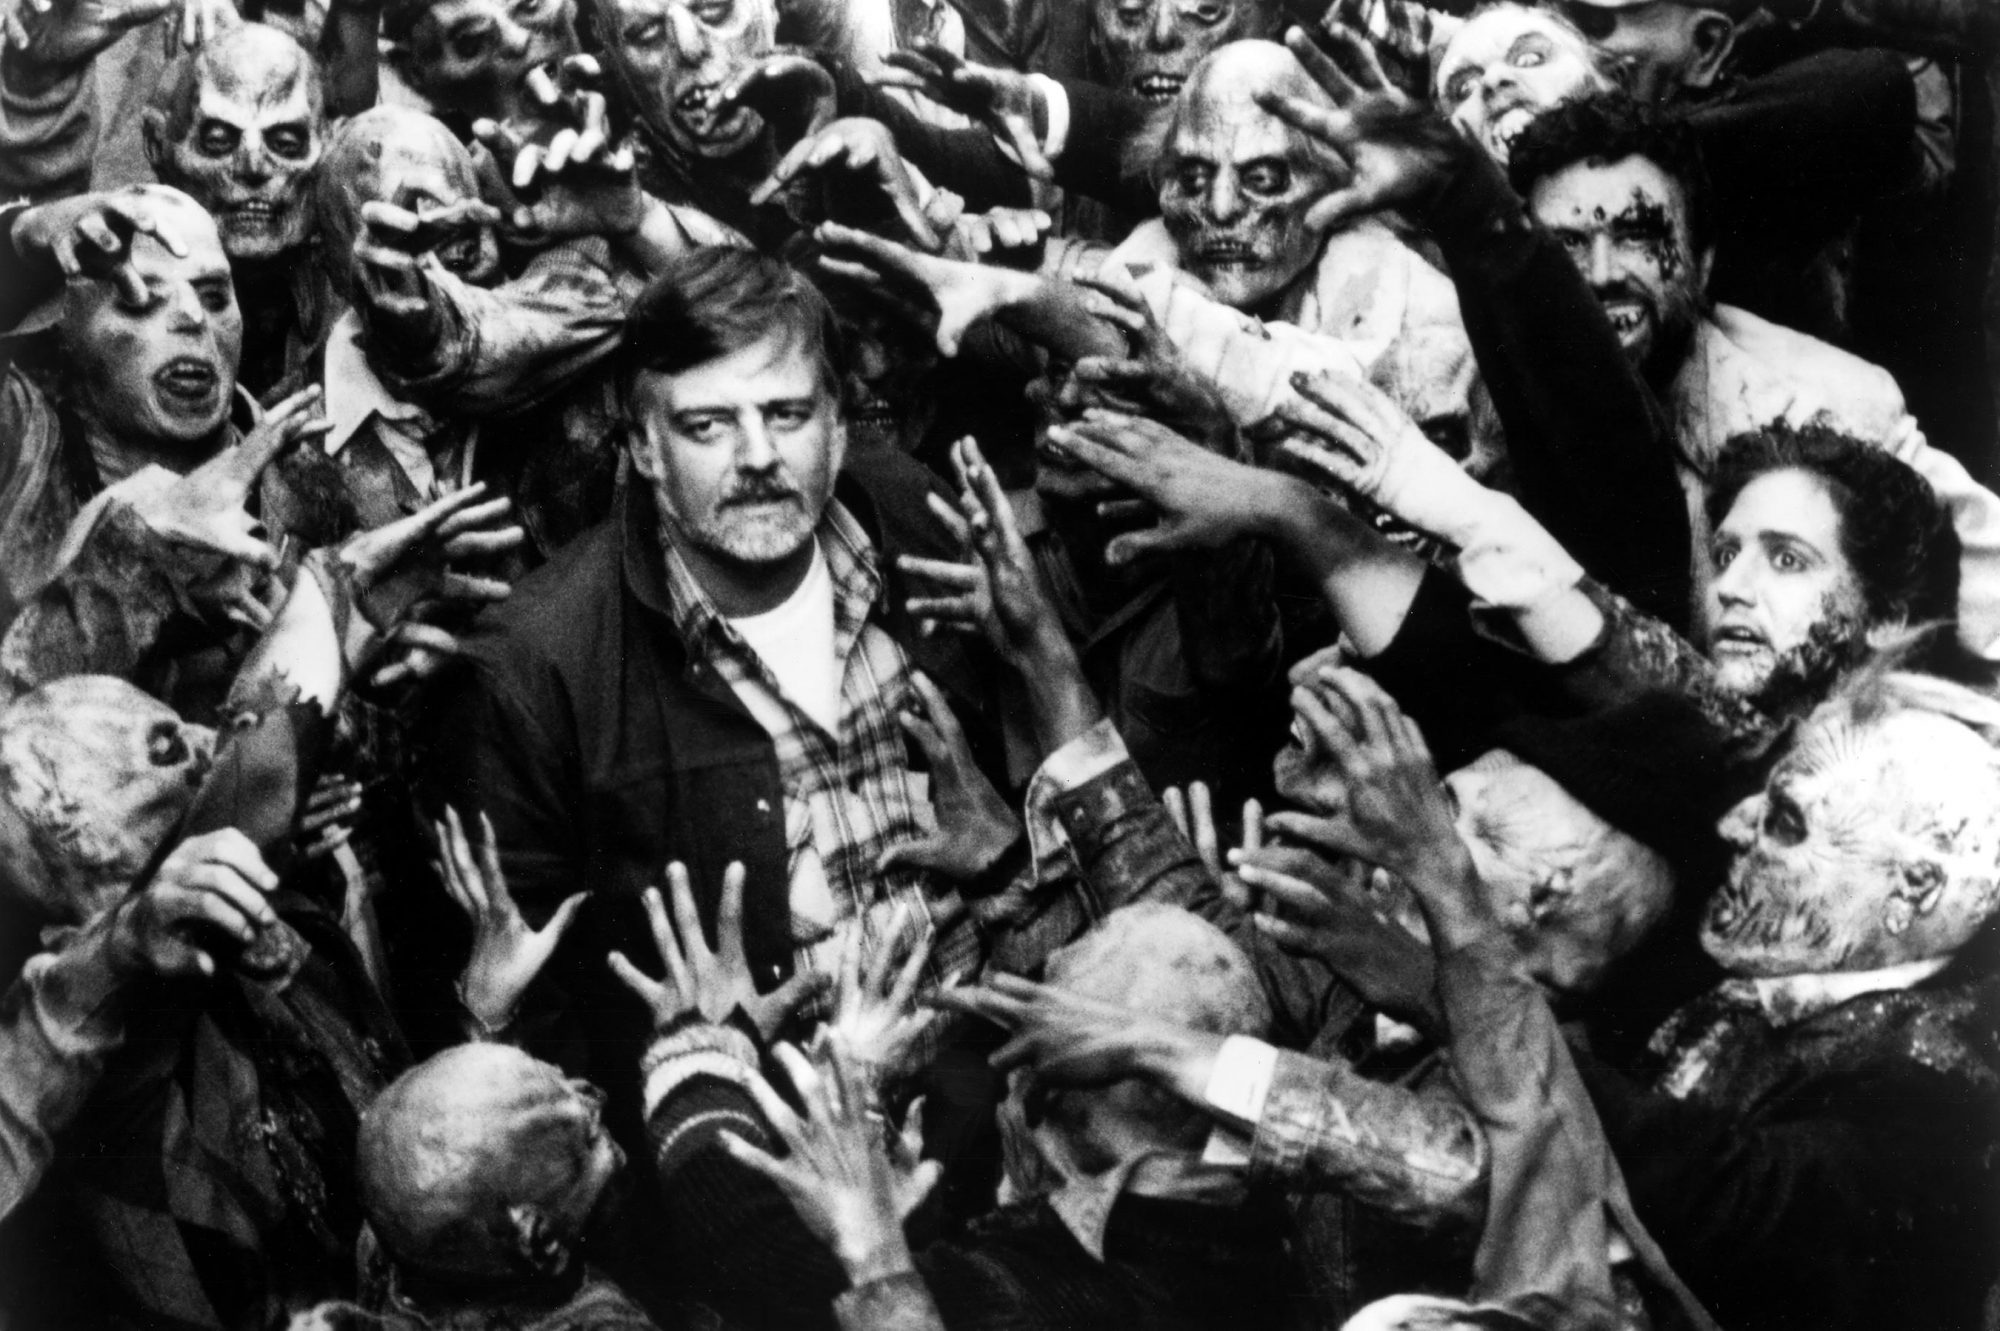 DAY OF THE DEAD, Director George A. Romero and zombies on set, 1985. (c) United Film/ Courtesy: Ever